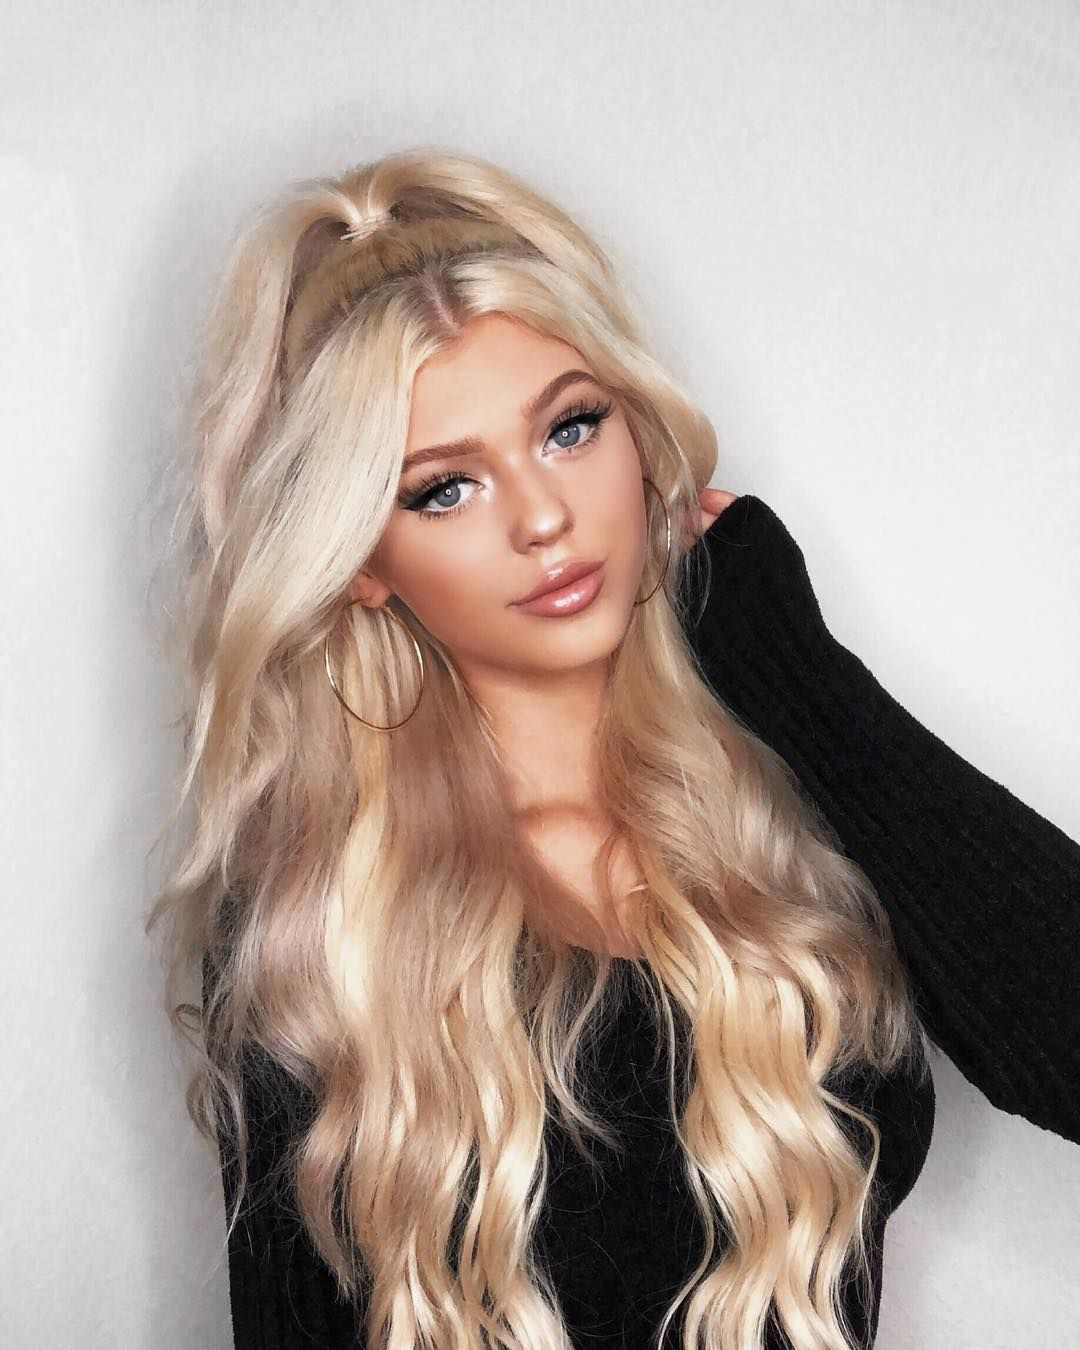 63189c27e6 9.3m Followers, 209 Following, 801 Posts - See Instagram photos and videos  from Loren Gray (@loren)